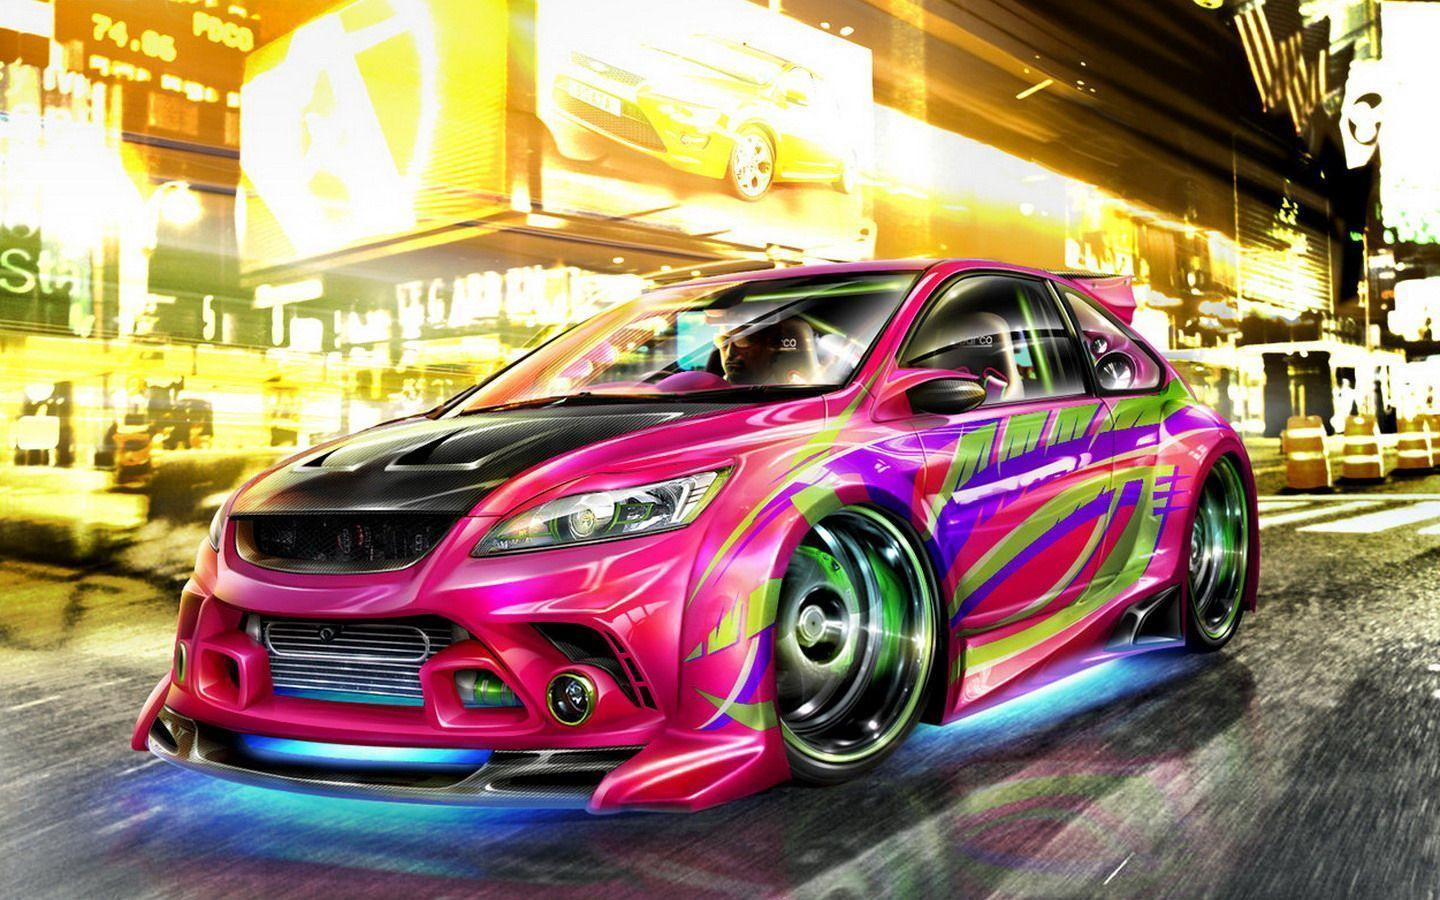 Cool Backgrounds Of Cars Wallpaper Cave